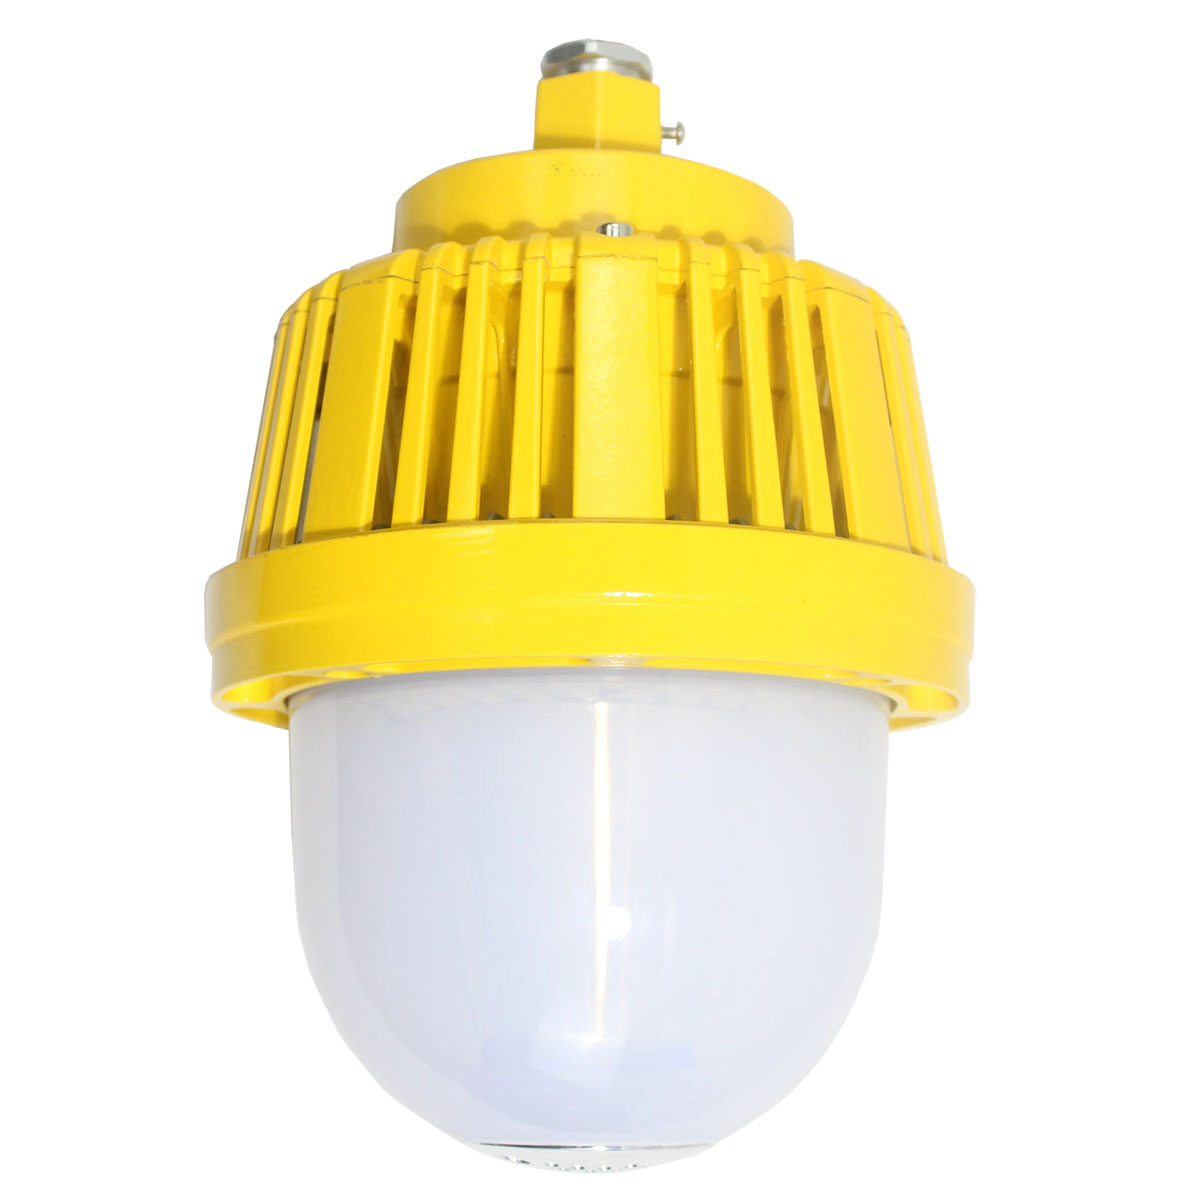 MAXL-5040P Explosion Proof Pendant Platform Light